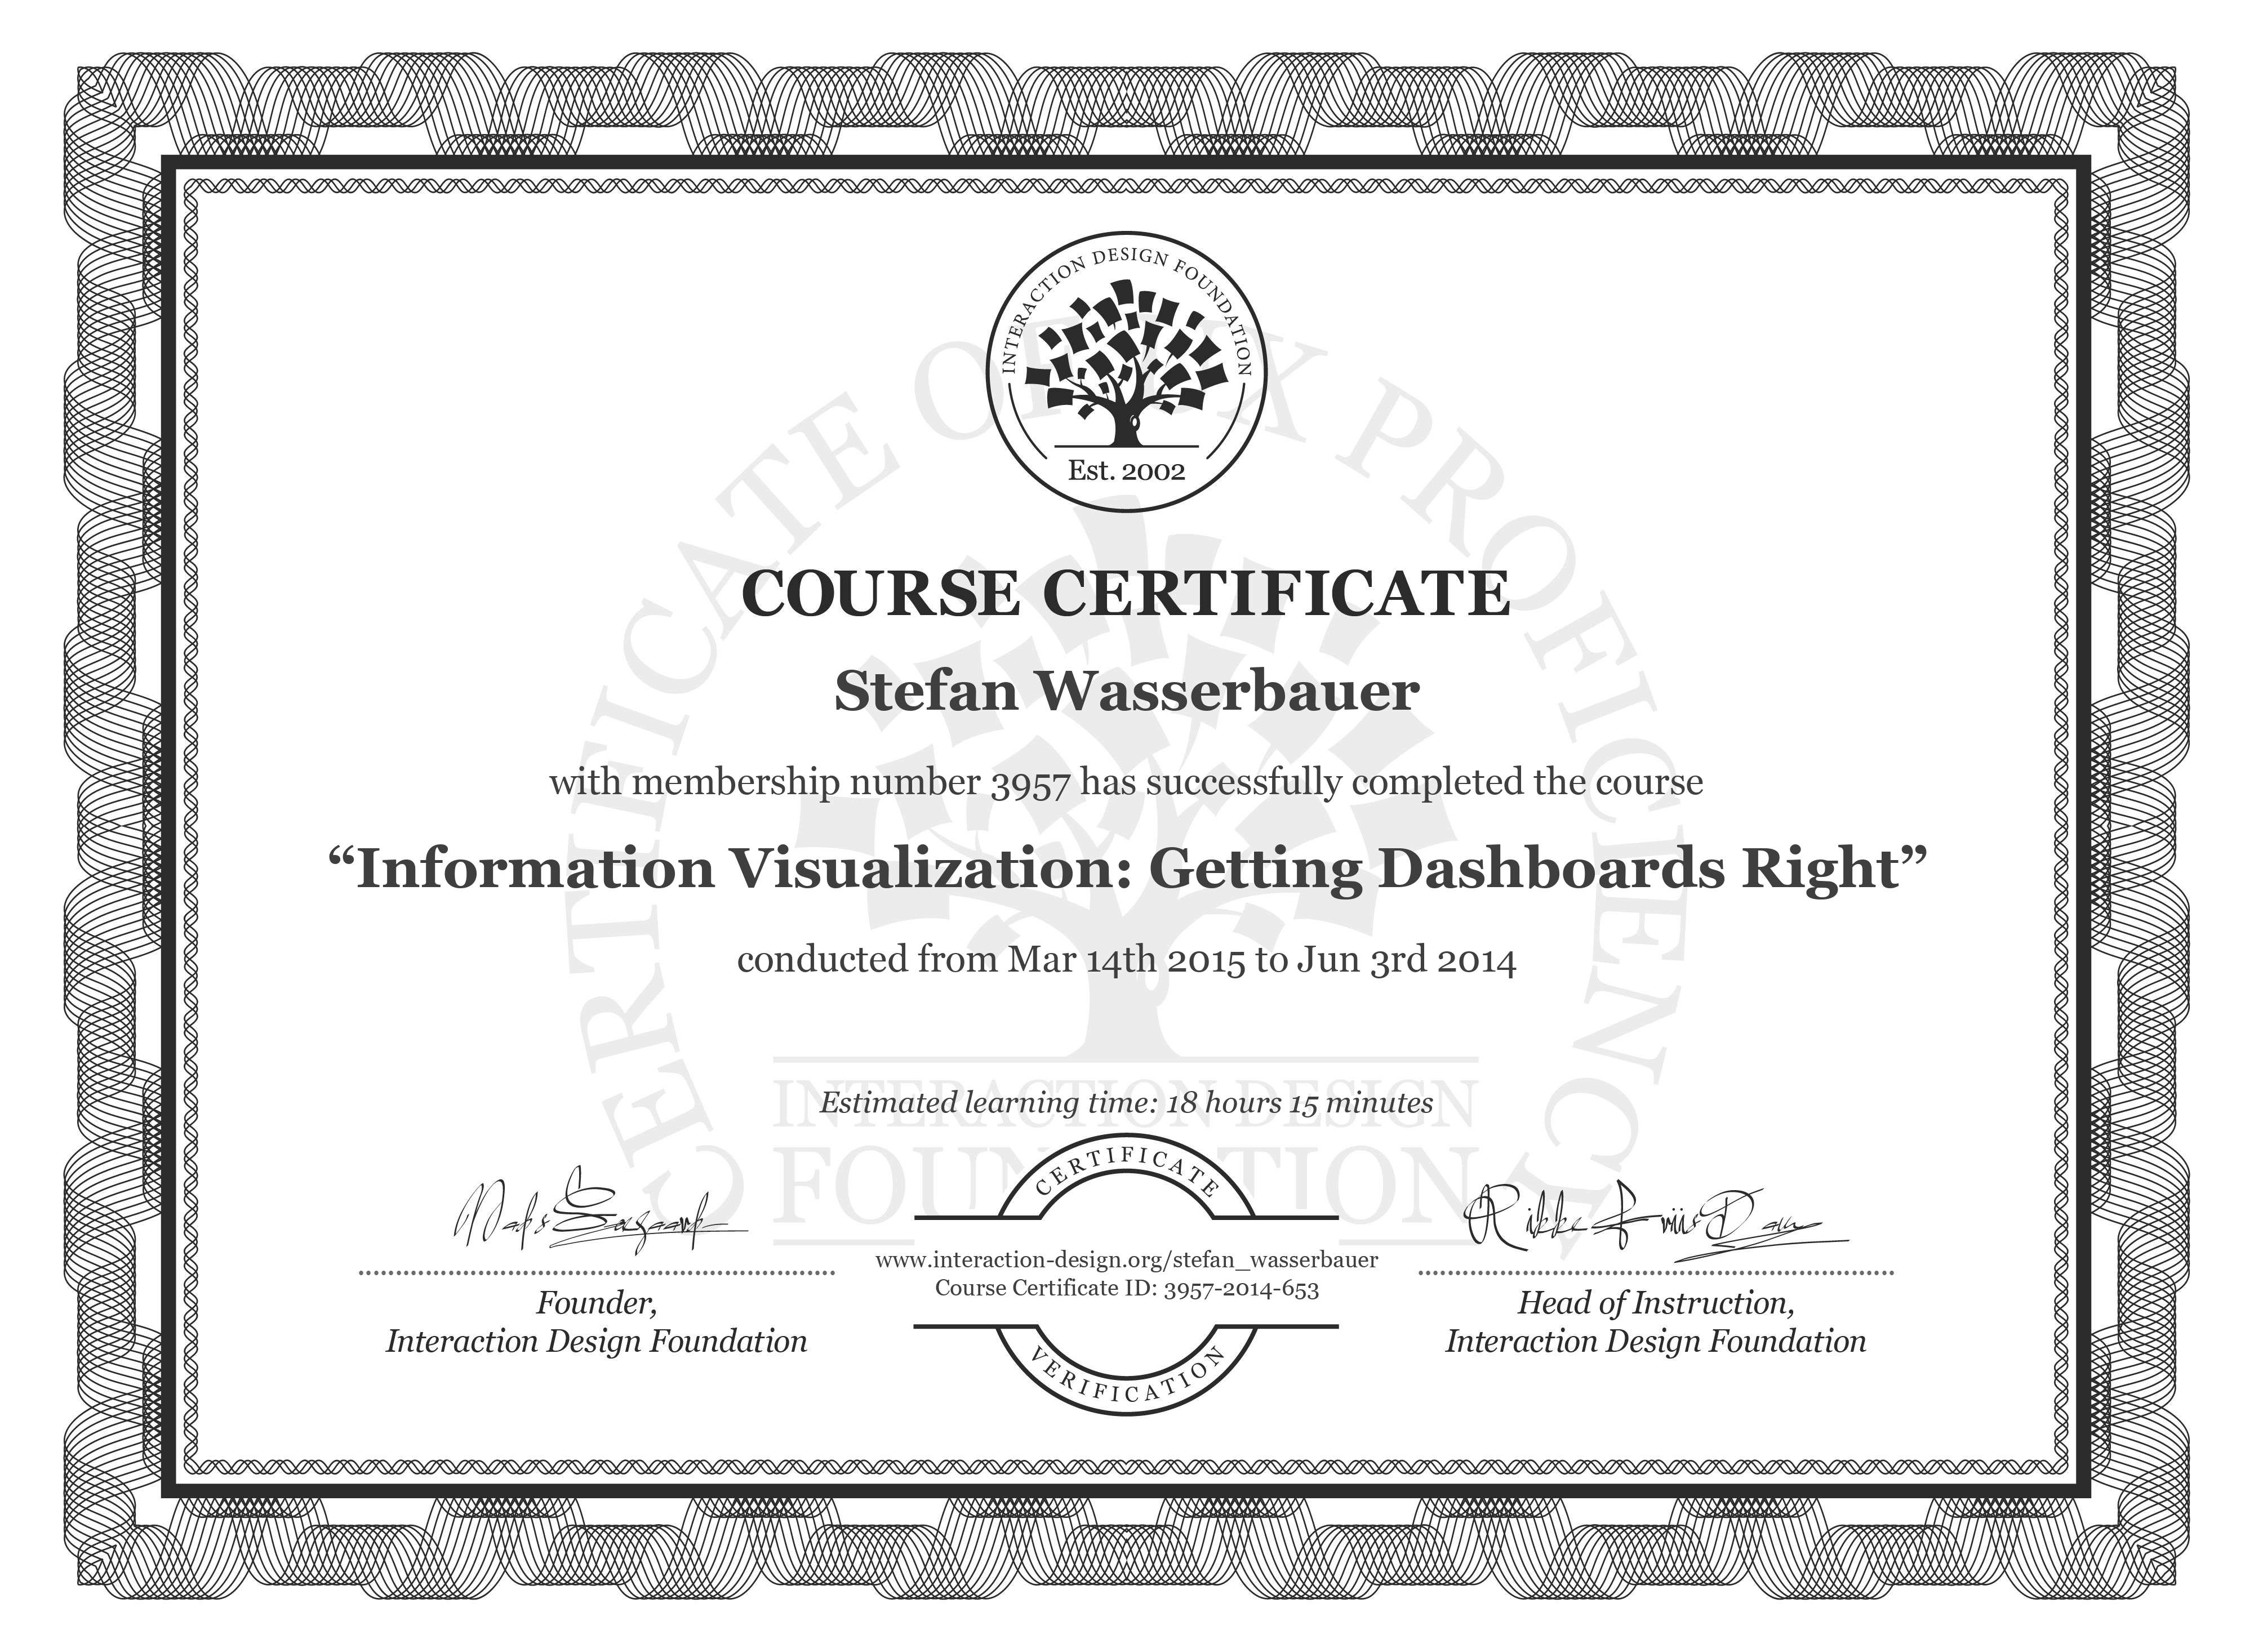 Stefan Wasserbauer's Course Certificate: Information Visualization: Getting Dashboards Right